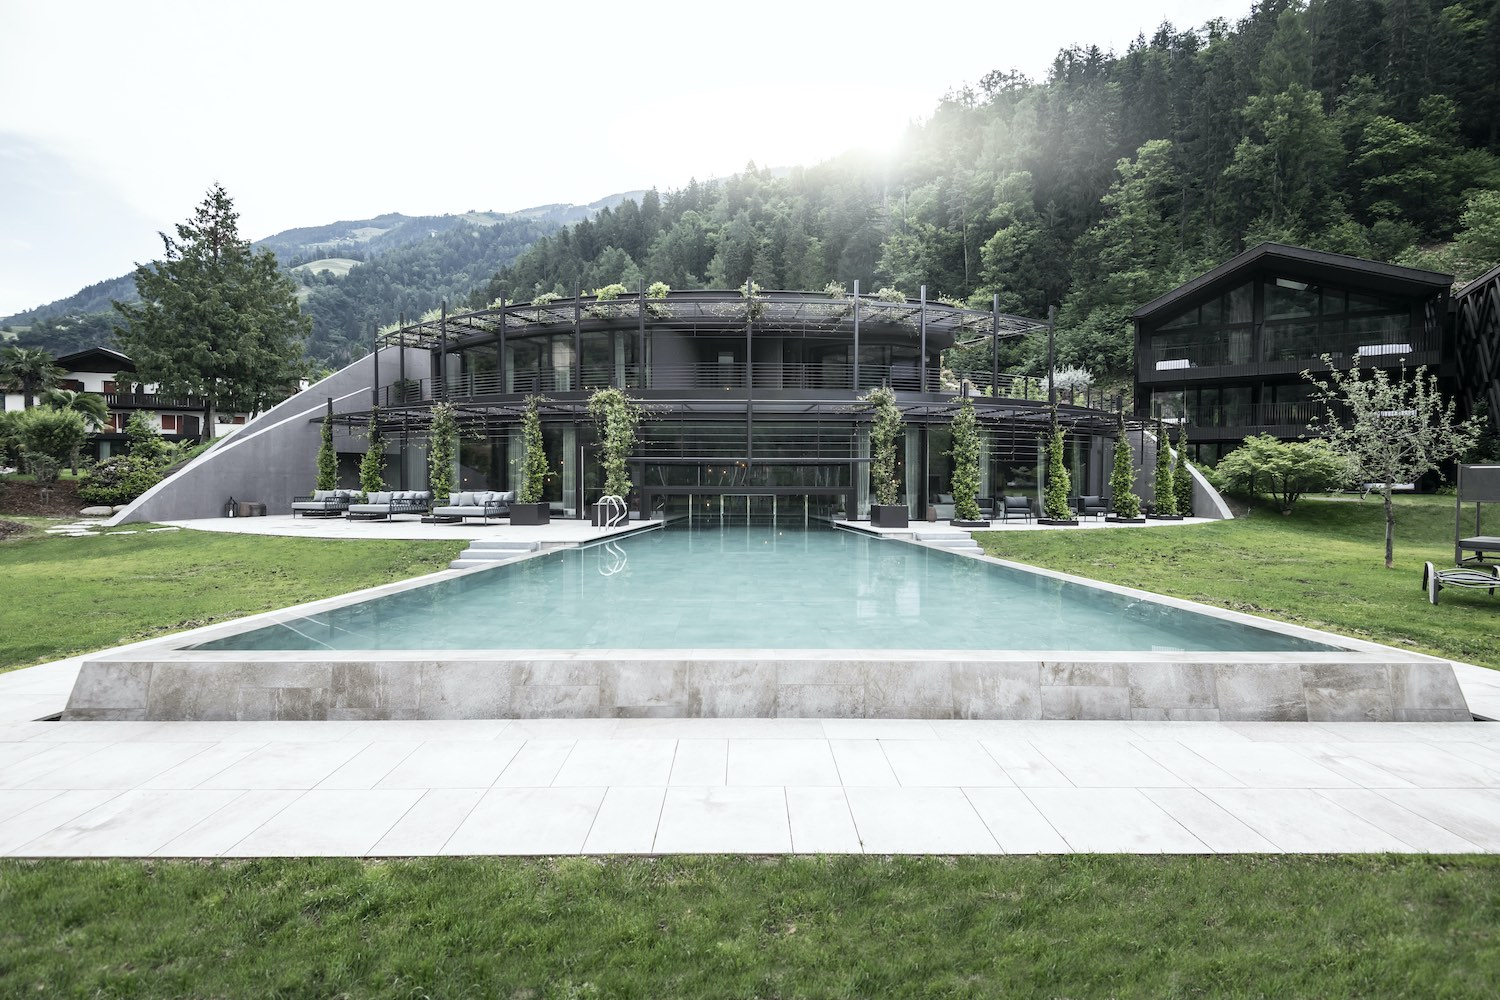 hotel with pool surrounded with green trees